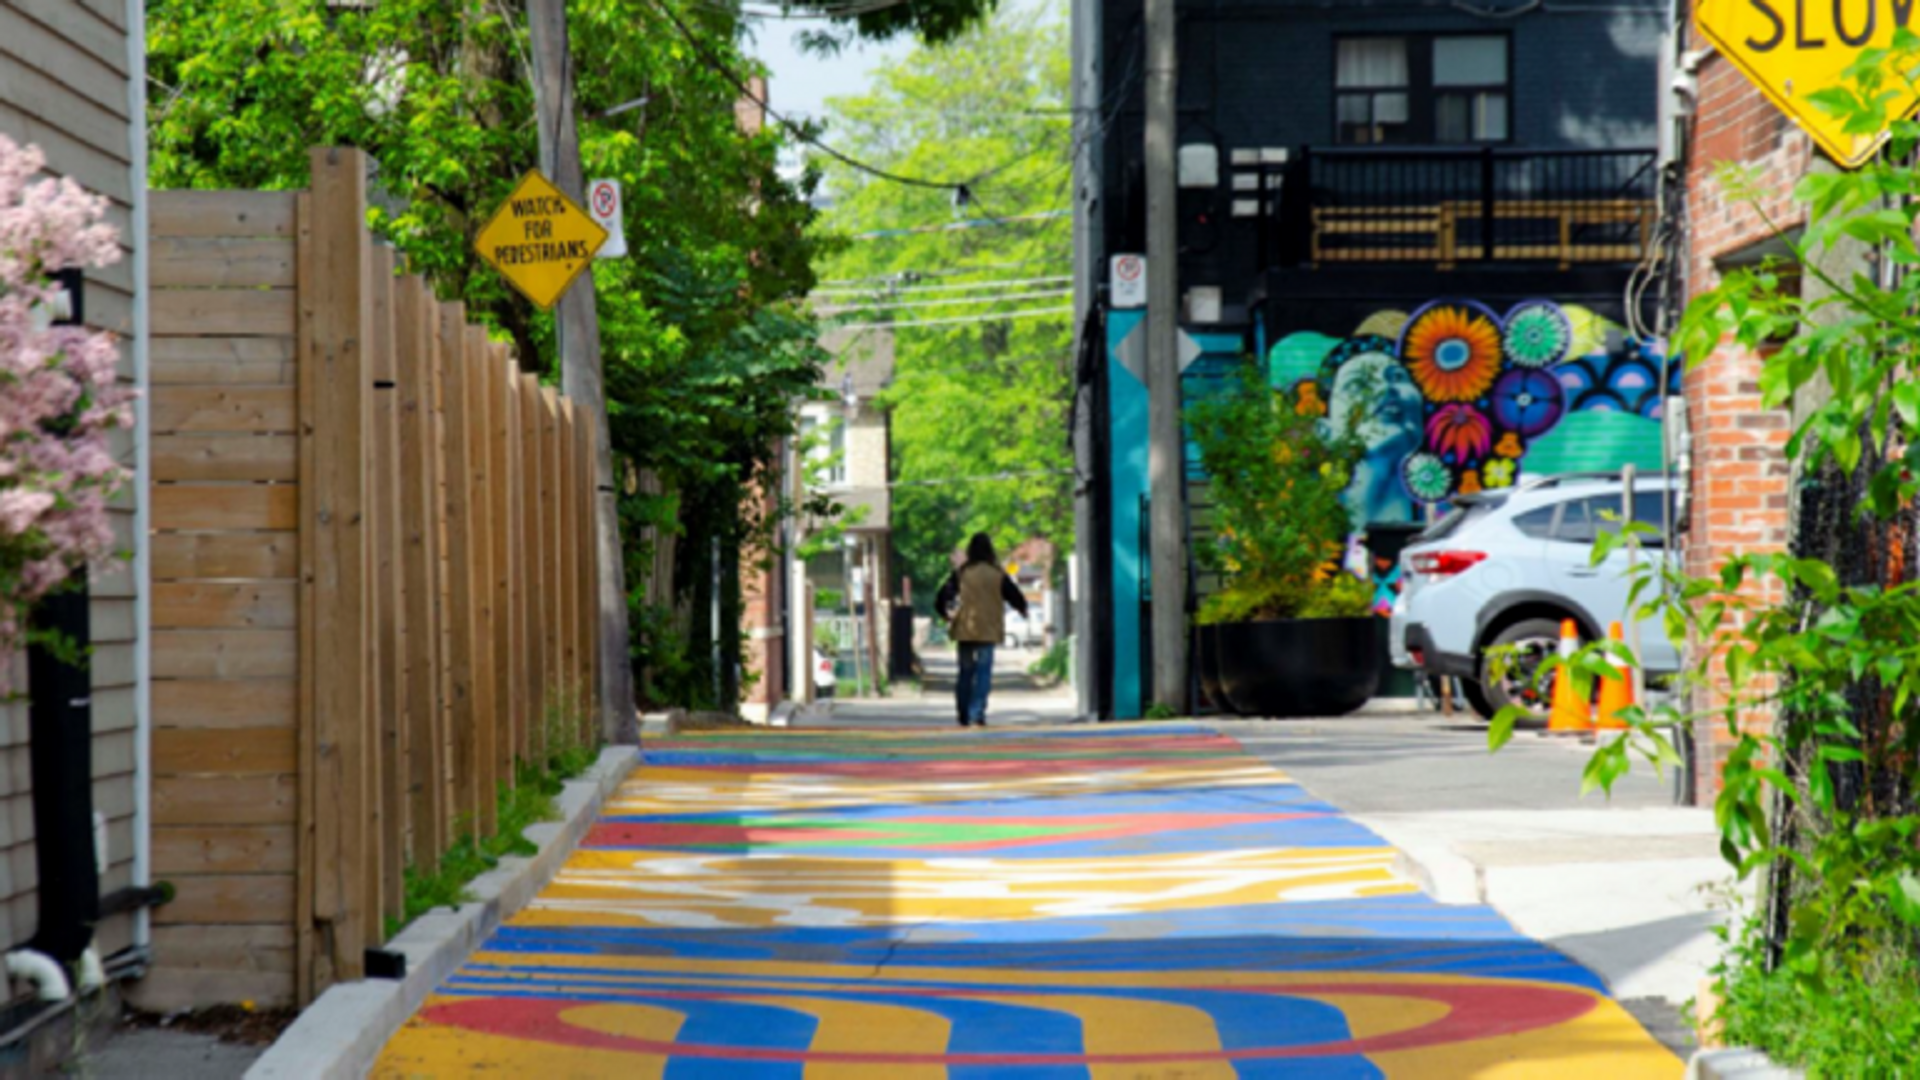 Healing Corridor and Playable Road Mural, by Monica Wickeler,Nyle Miigizi Johnston,and The Laneway Project